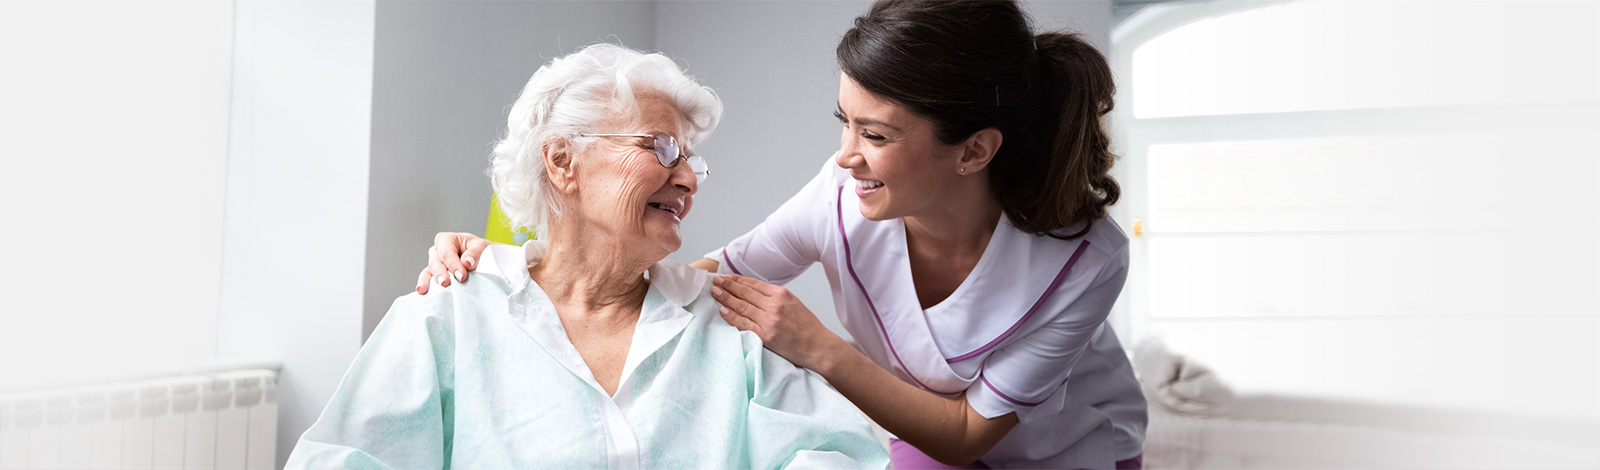 Smiling nurse wearing lavender scrubs with her hands on a resident's shoulders